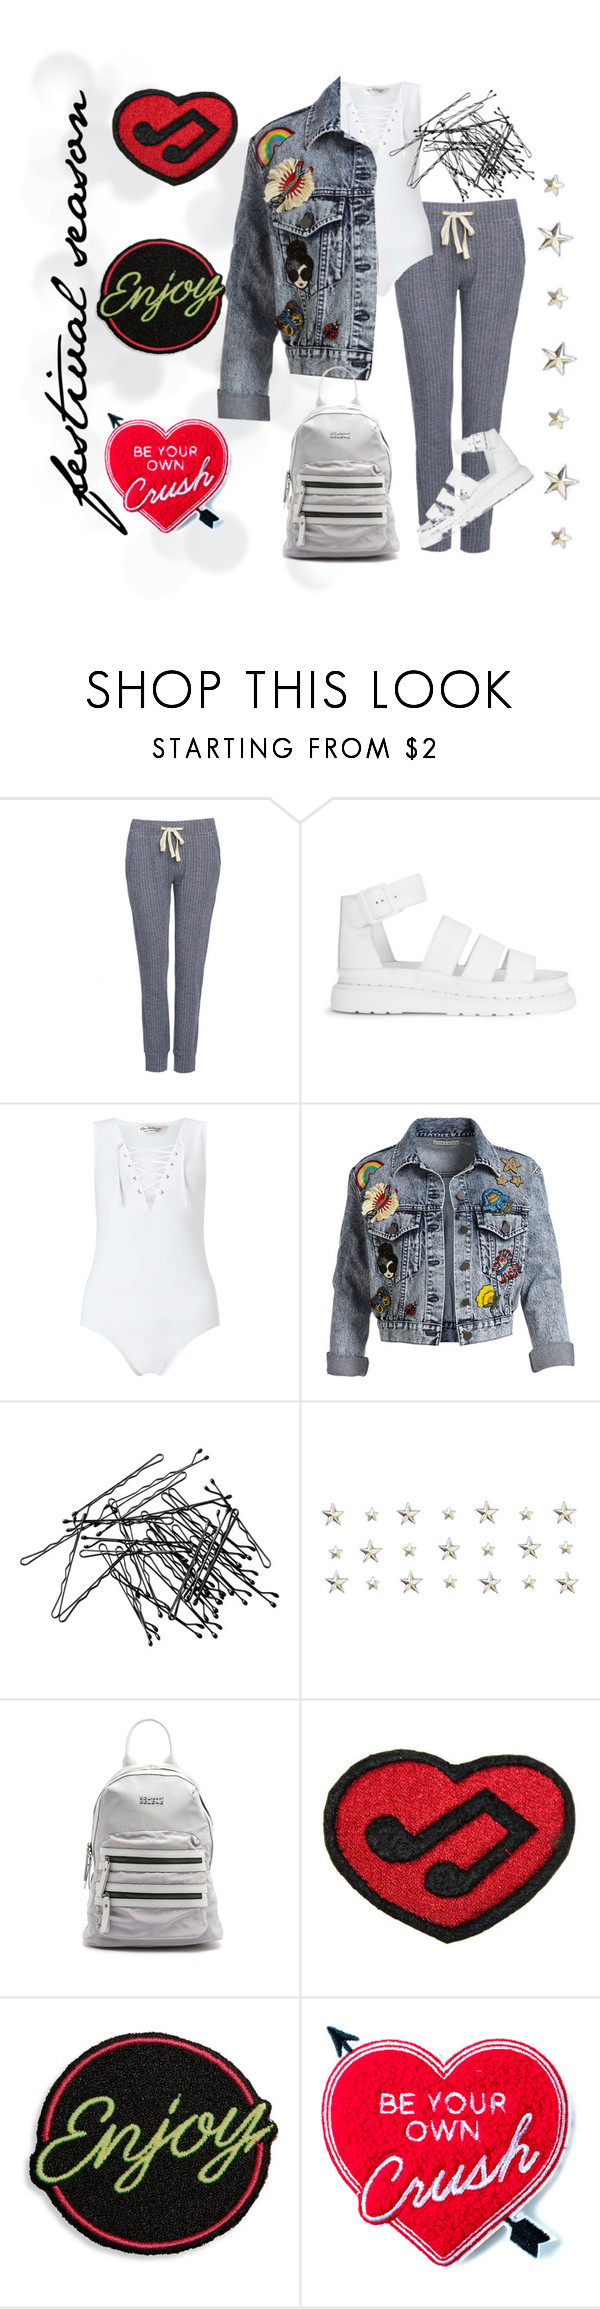 """Festival Season"" by stylequirk ❤ liked on Polyvore featuring Dr. Martens, Miss Selfridge, Alice + Olivia, H&M, Sol & Selene, Logophile, Marc Jacobs and Yvng Pearl"